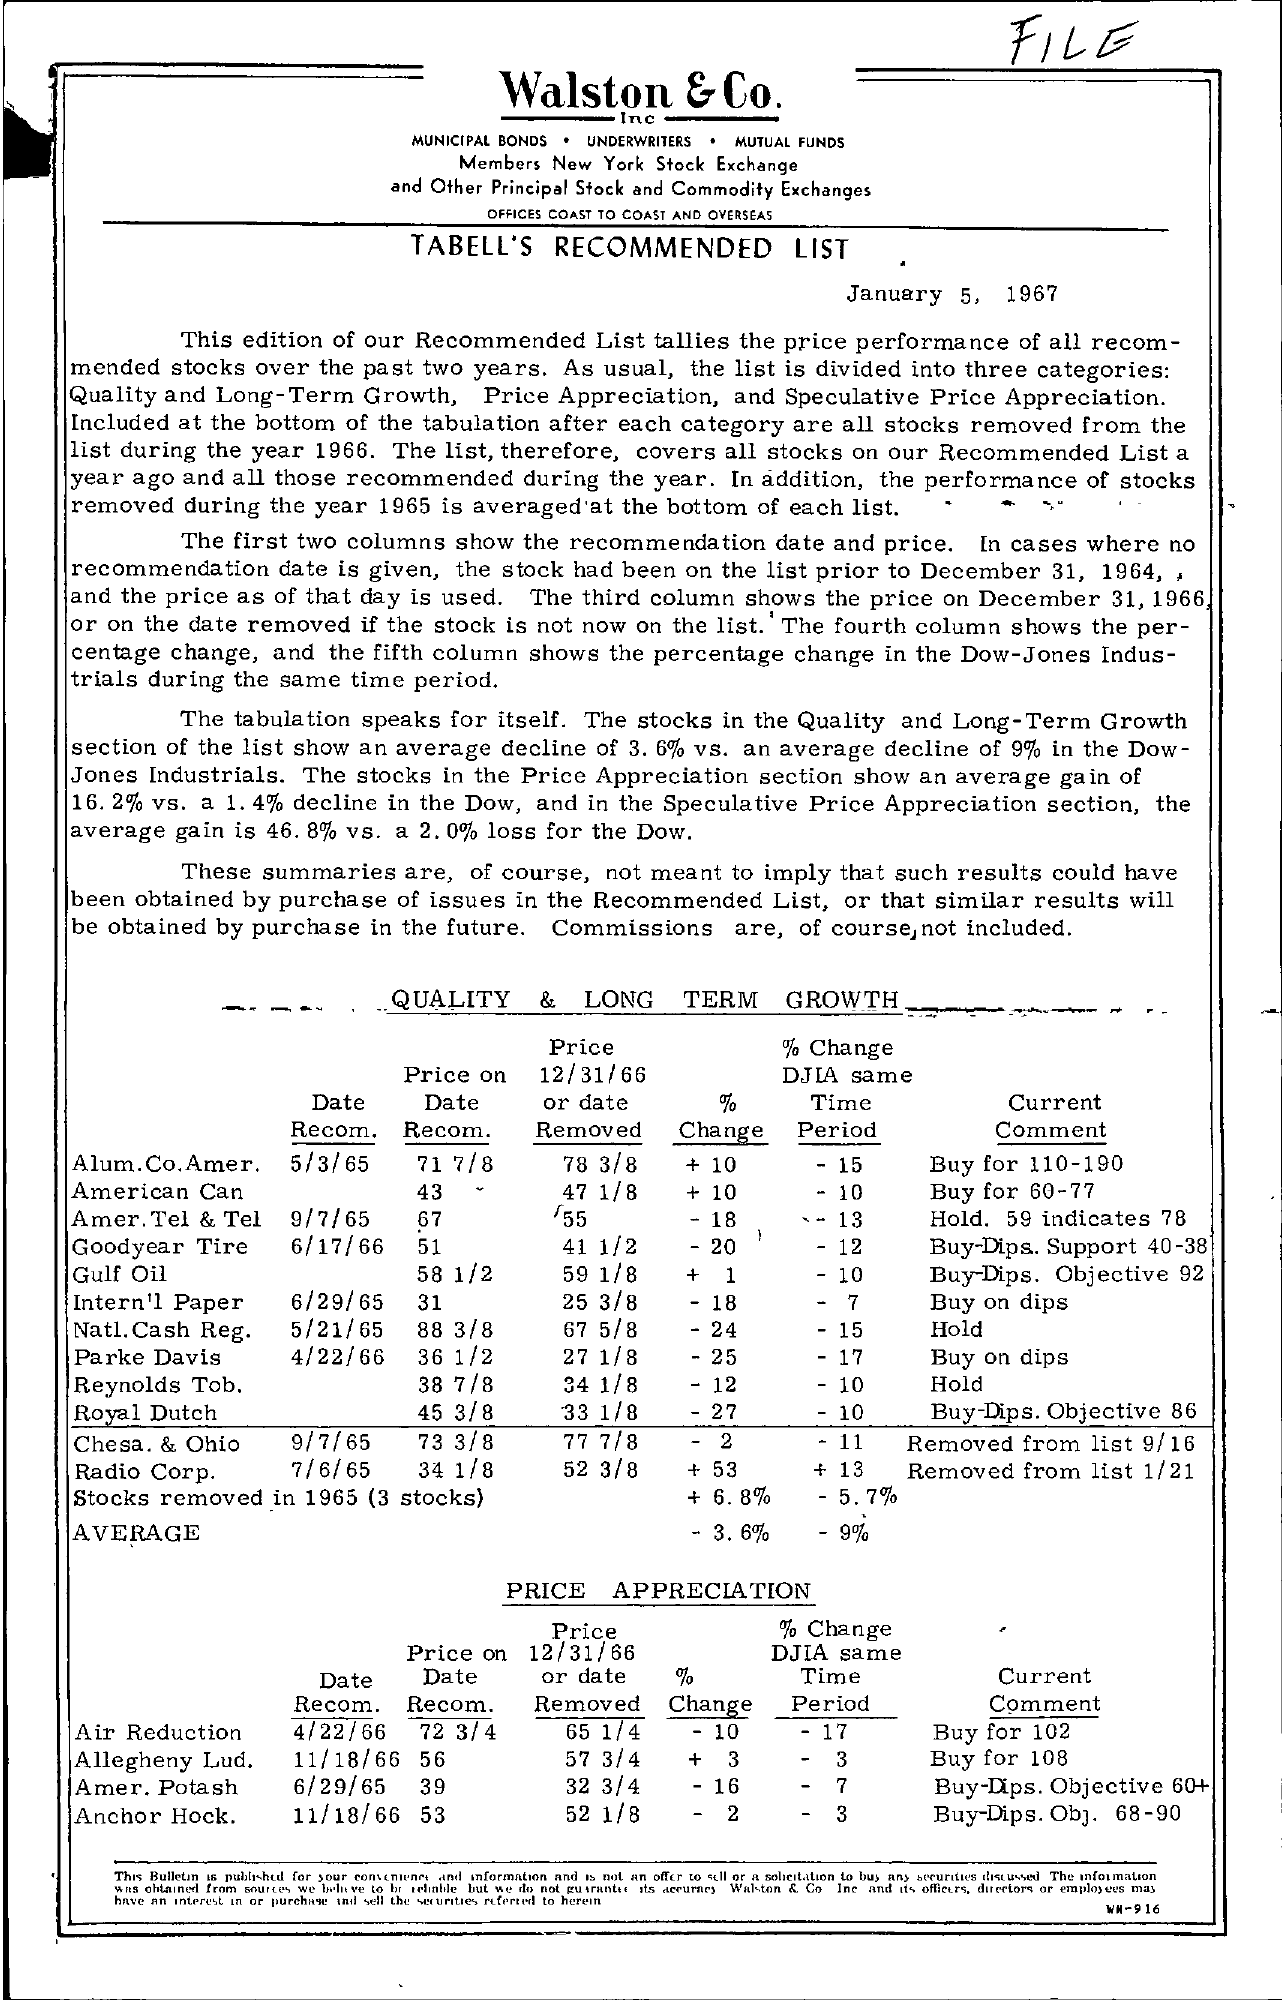 Tabell's Market Letter - January 05, 1967 page 1